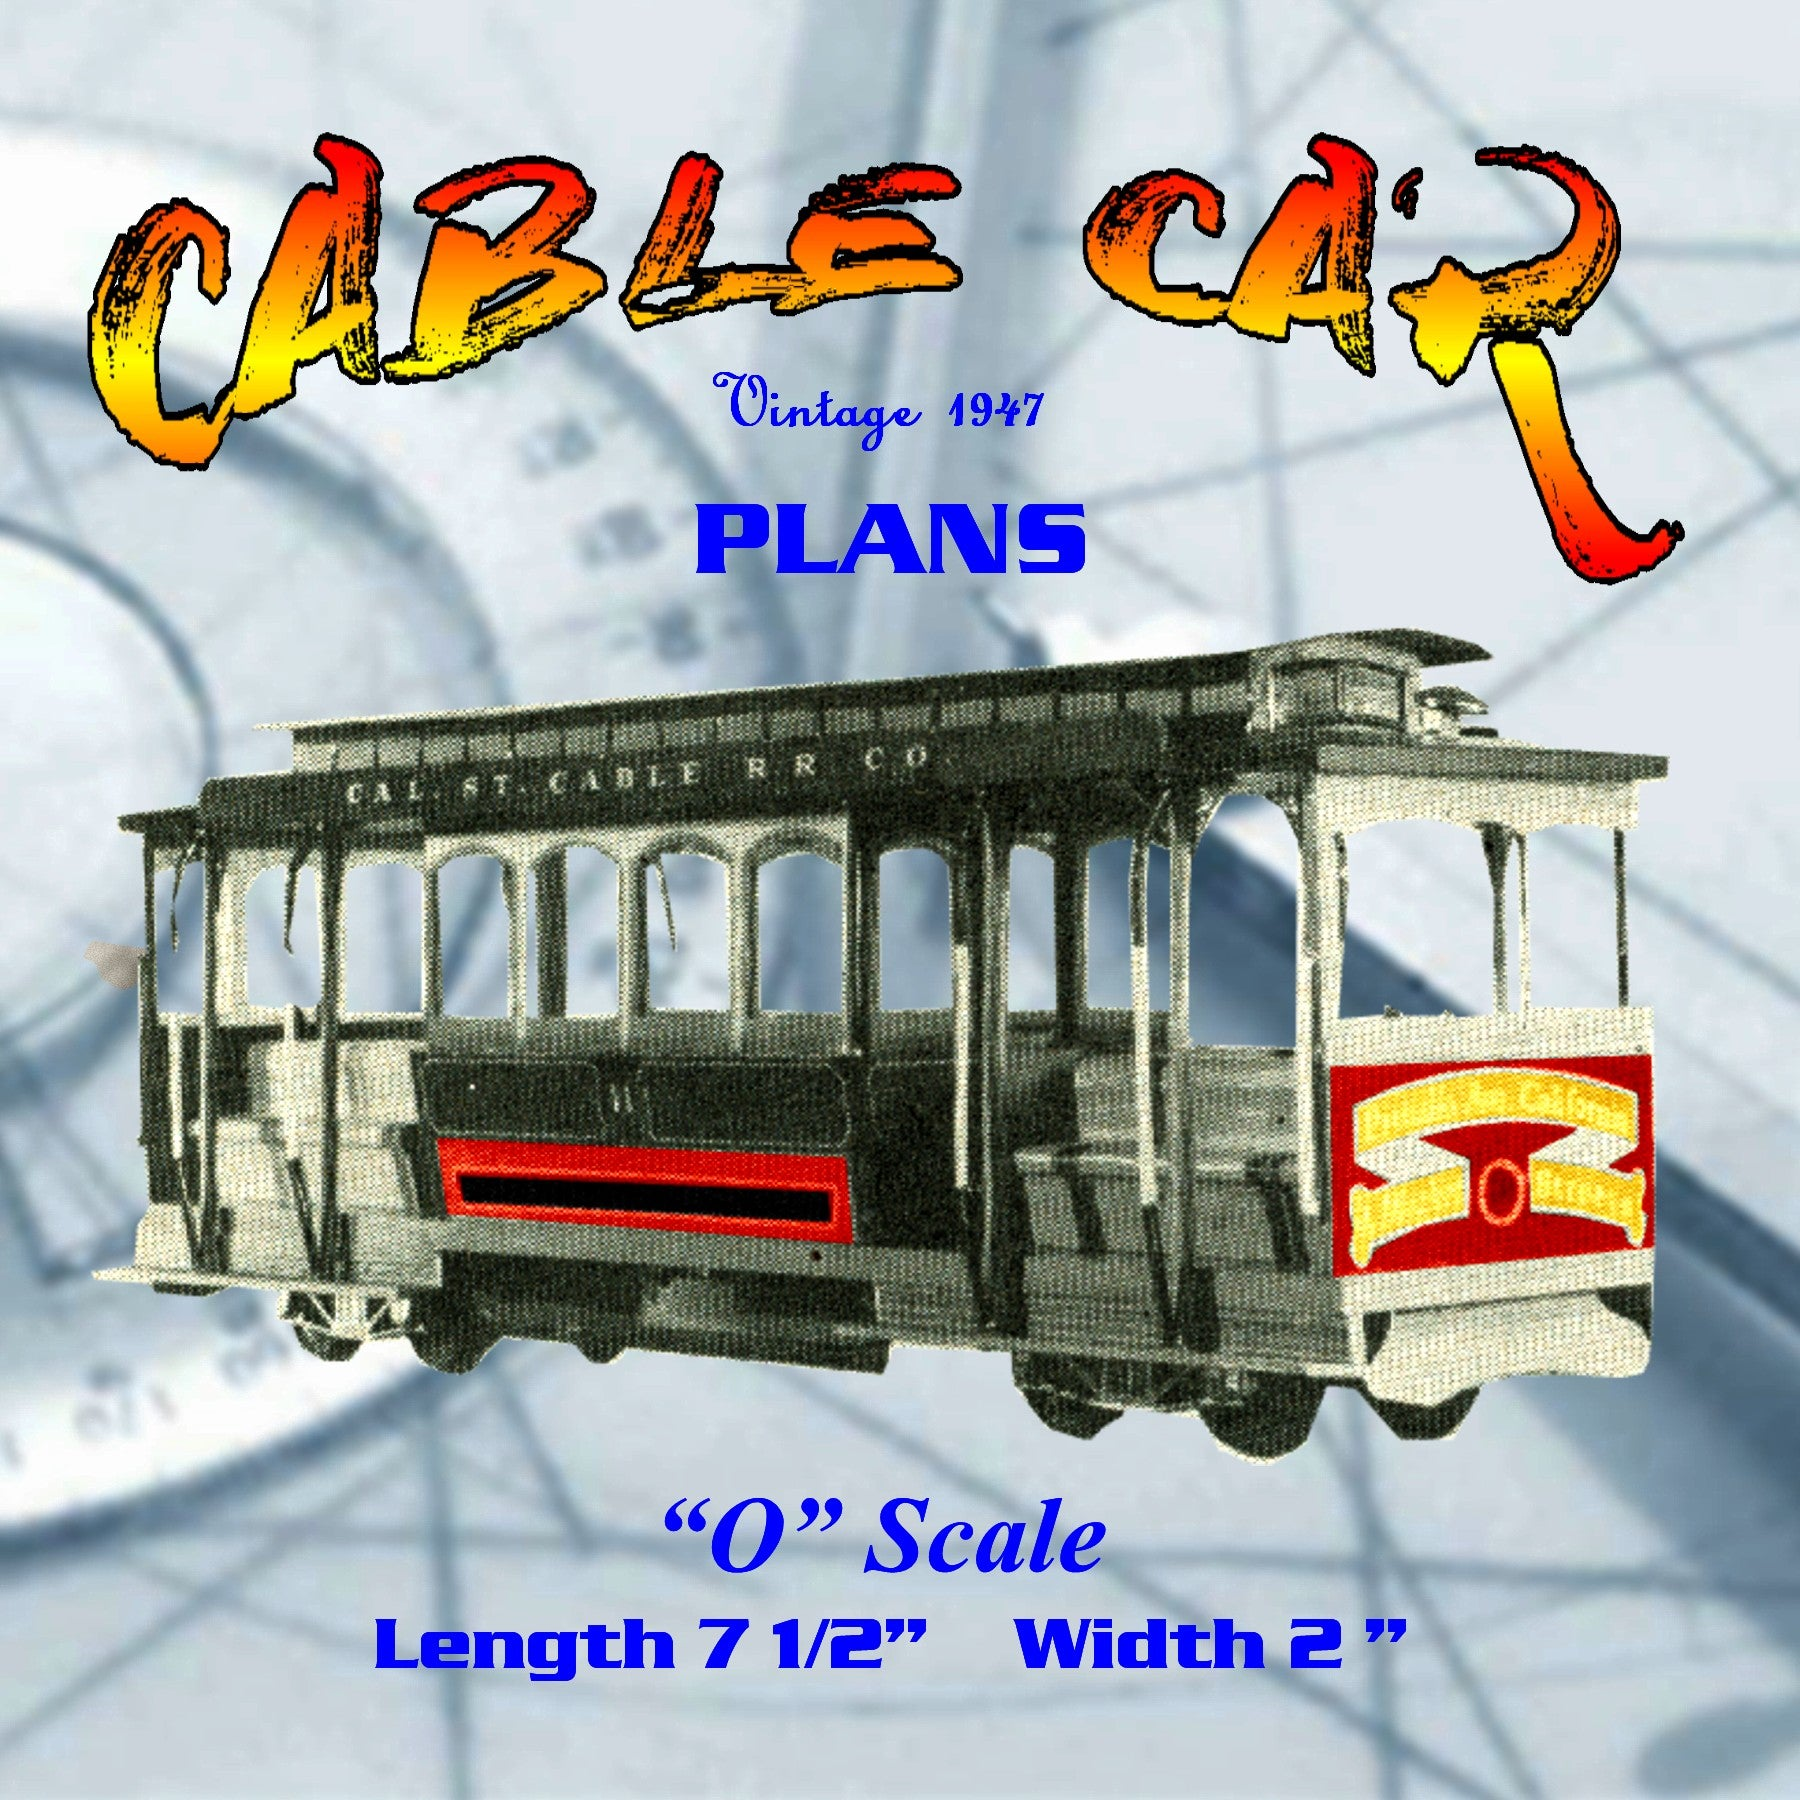 "Full size printed plan ""O GAUGE"" CABLE CAR San Francisco's answer to their steep hill problem"